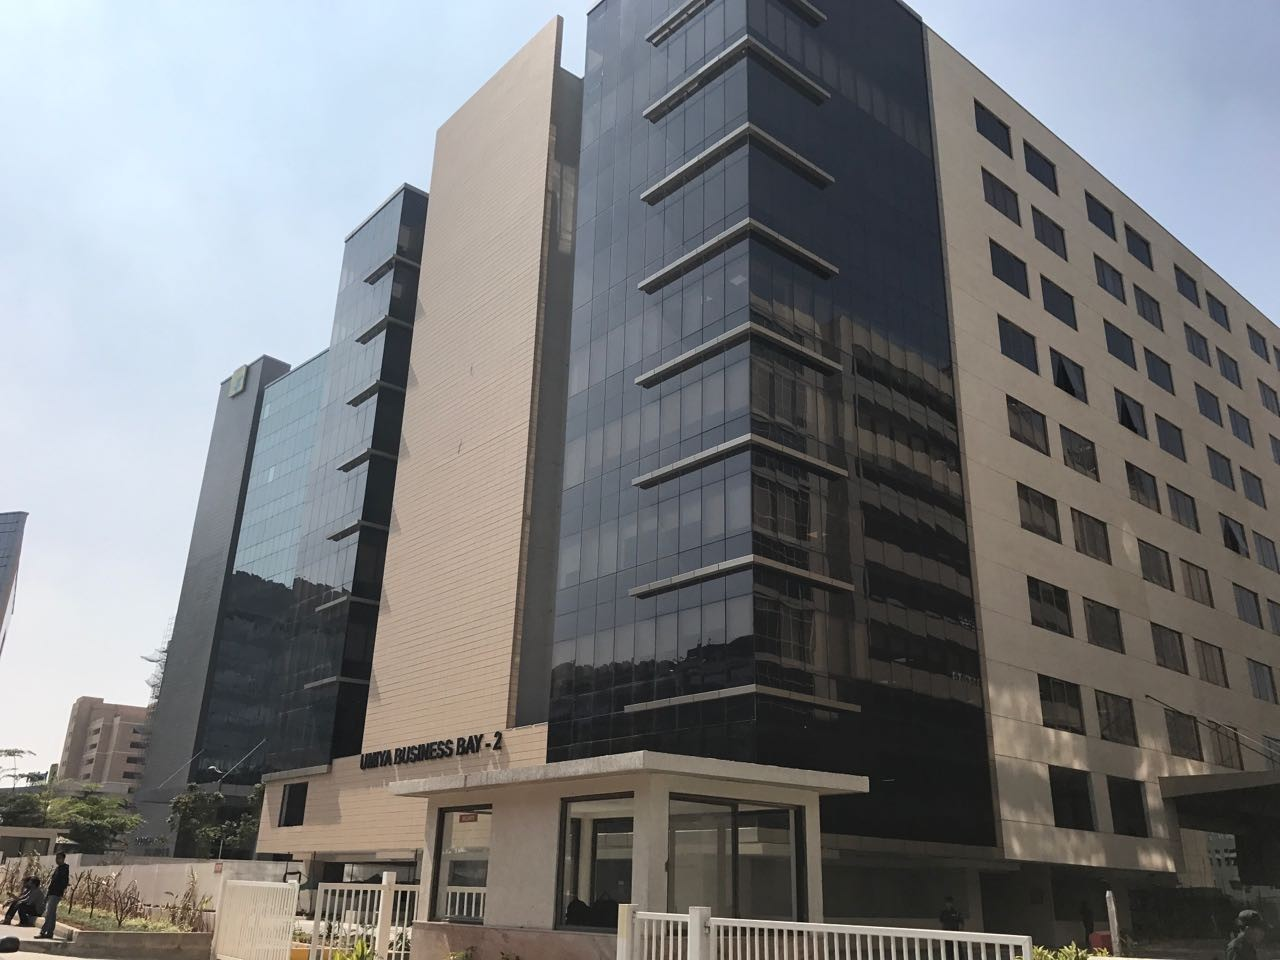 Umiya Business Bay I